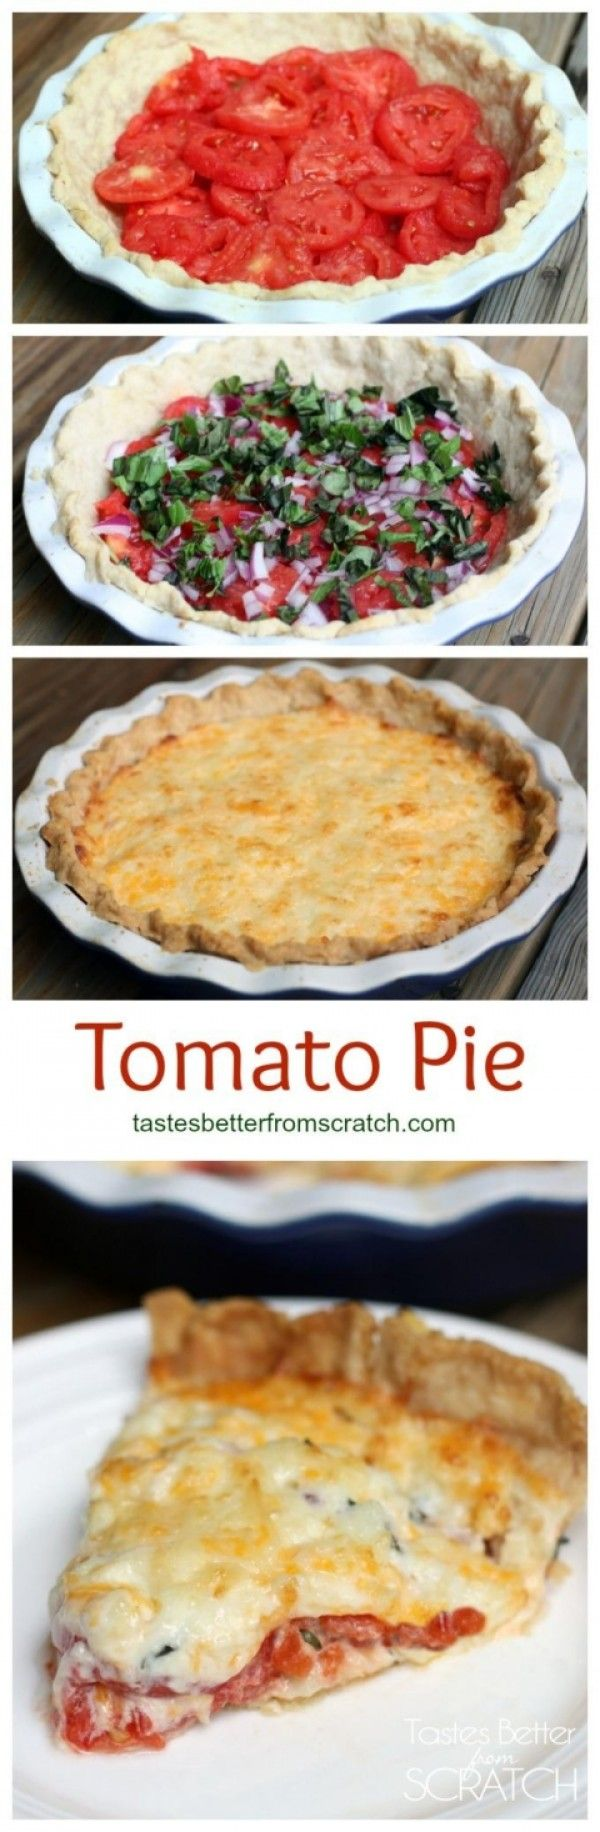 20 Crazy Delicious Vegetable Pies You Have to Try : besttoeat